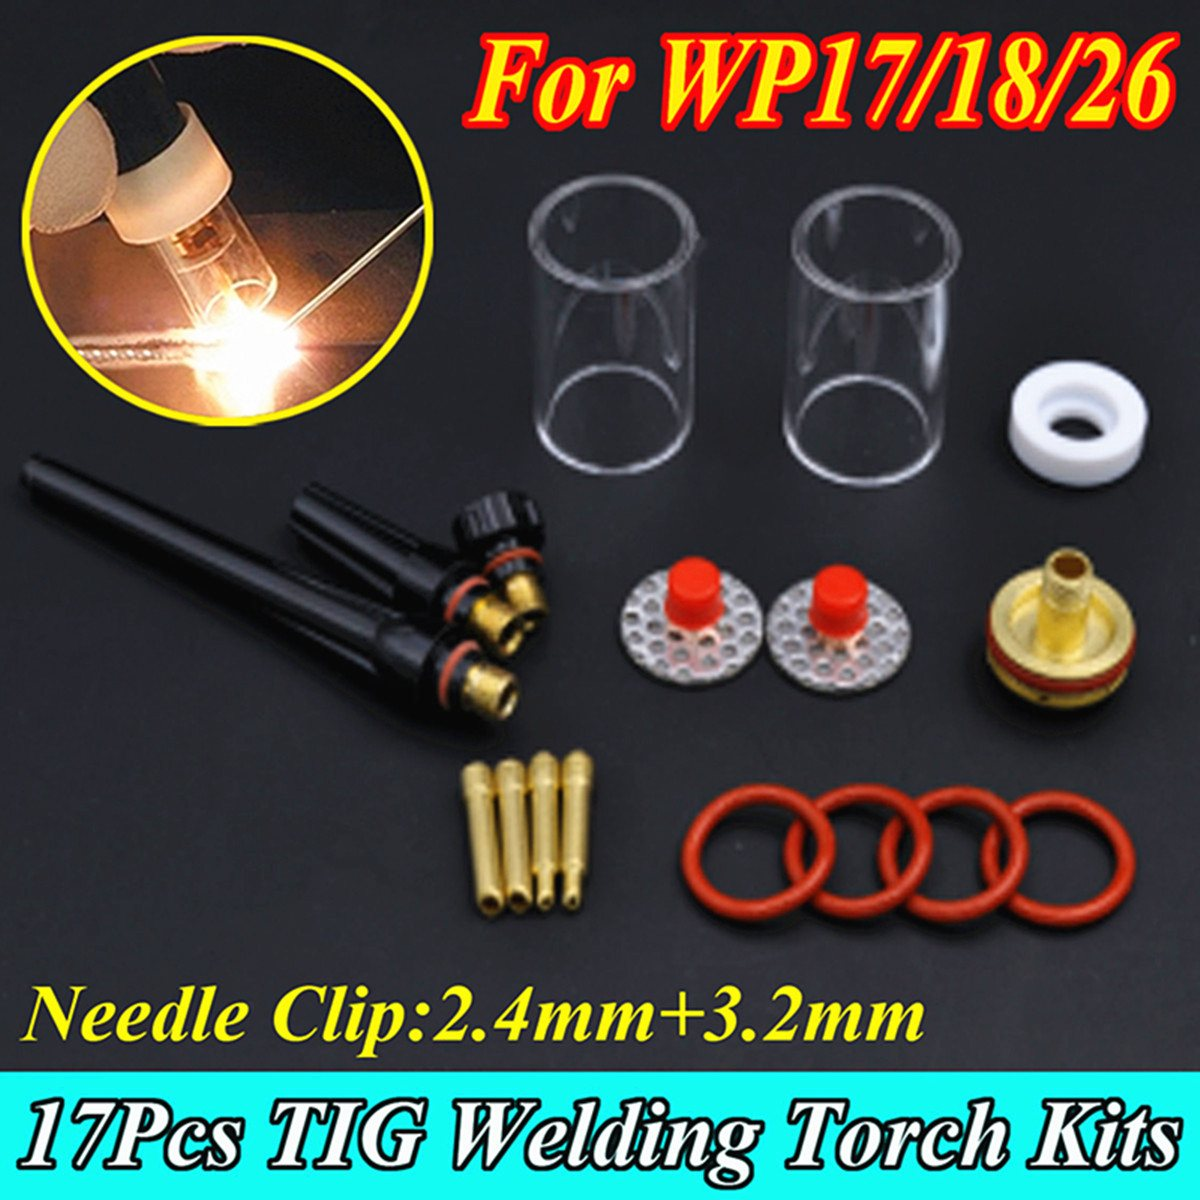 New 17PCS TIG Welding Torch Gas Lens Pyrex Glass Cup Stubby Collet FOR WP-17/18/26 Series Welding Accessories wp 17f sr 17f tig welding torch complete 13feet 4meter soldering iron flexible